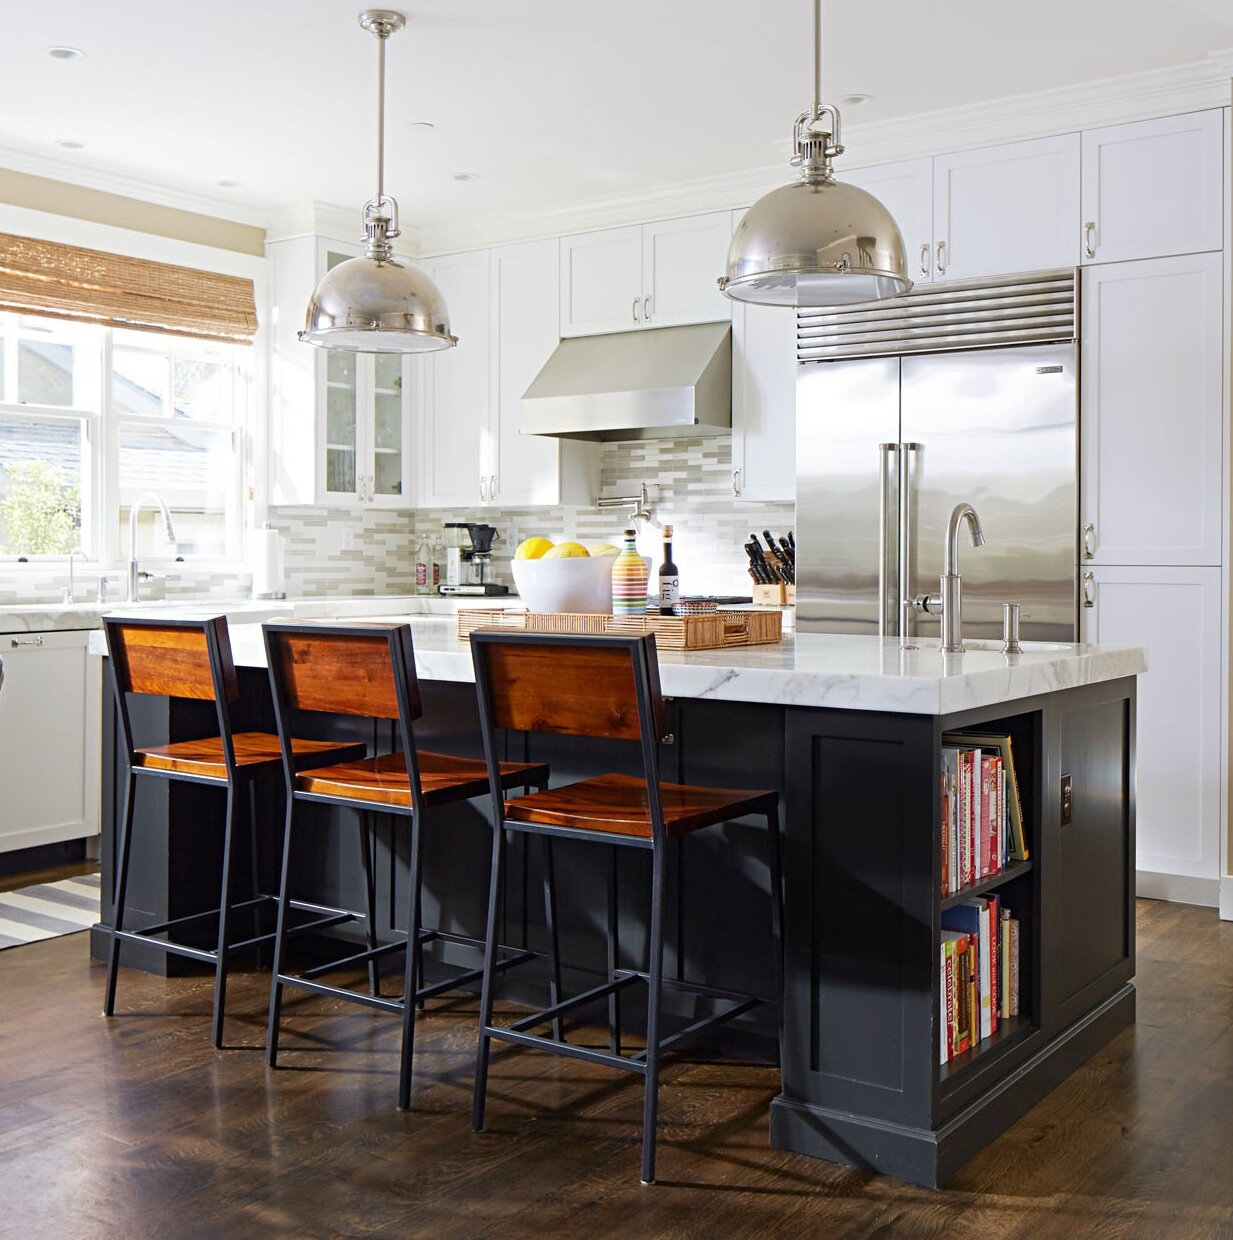 How to Clean Your Kitchen with DIY Solutions | Midwest Living